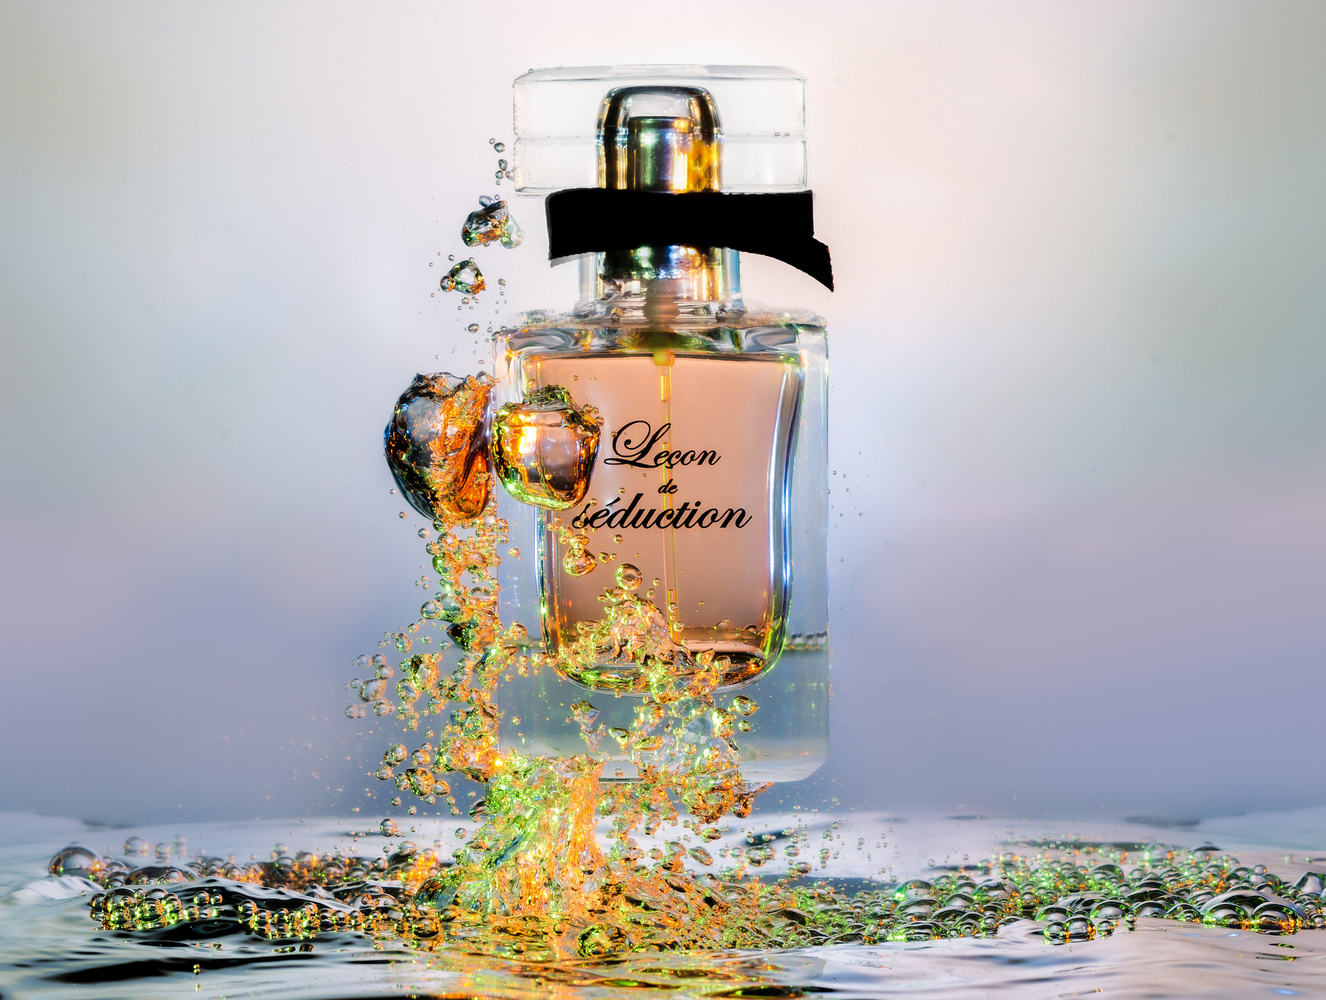 Bubble fragrance by Thierry KUBA